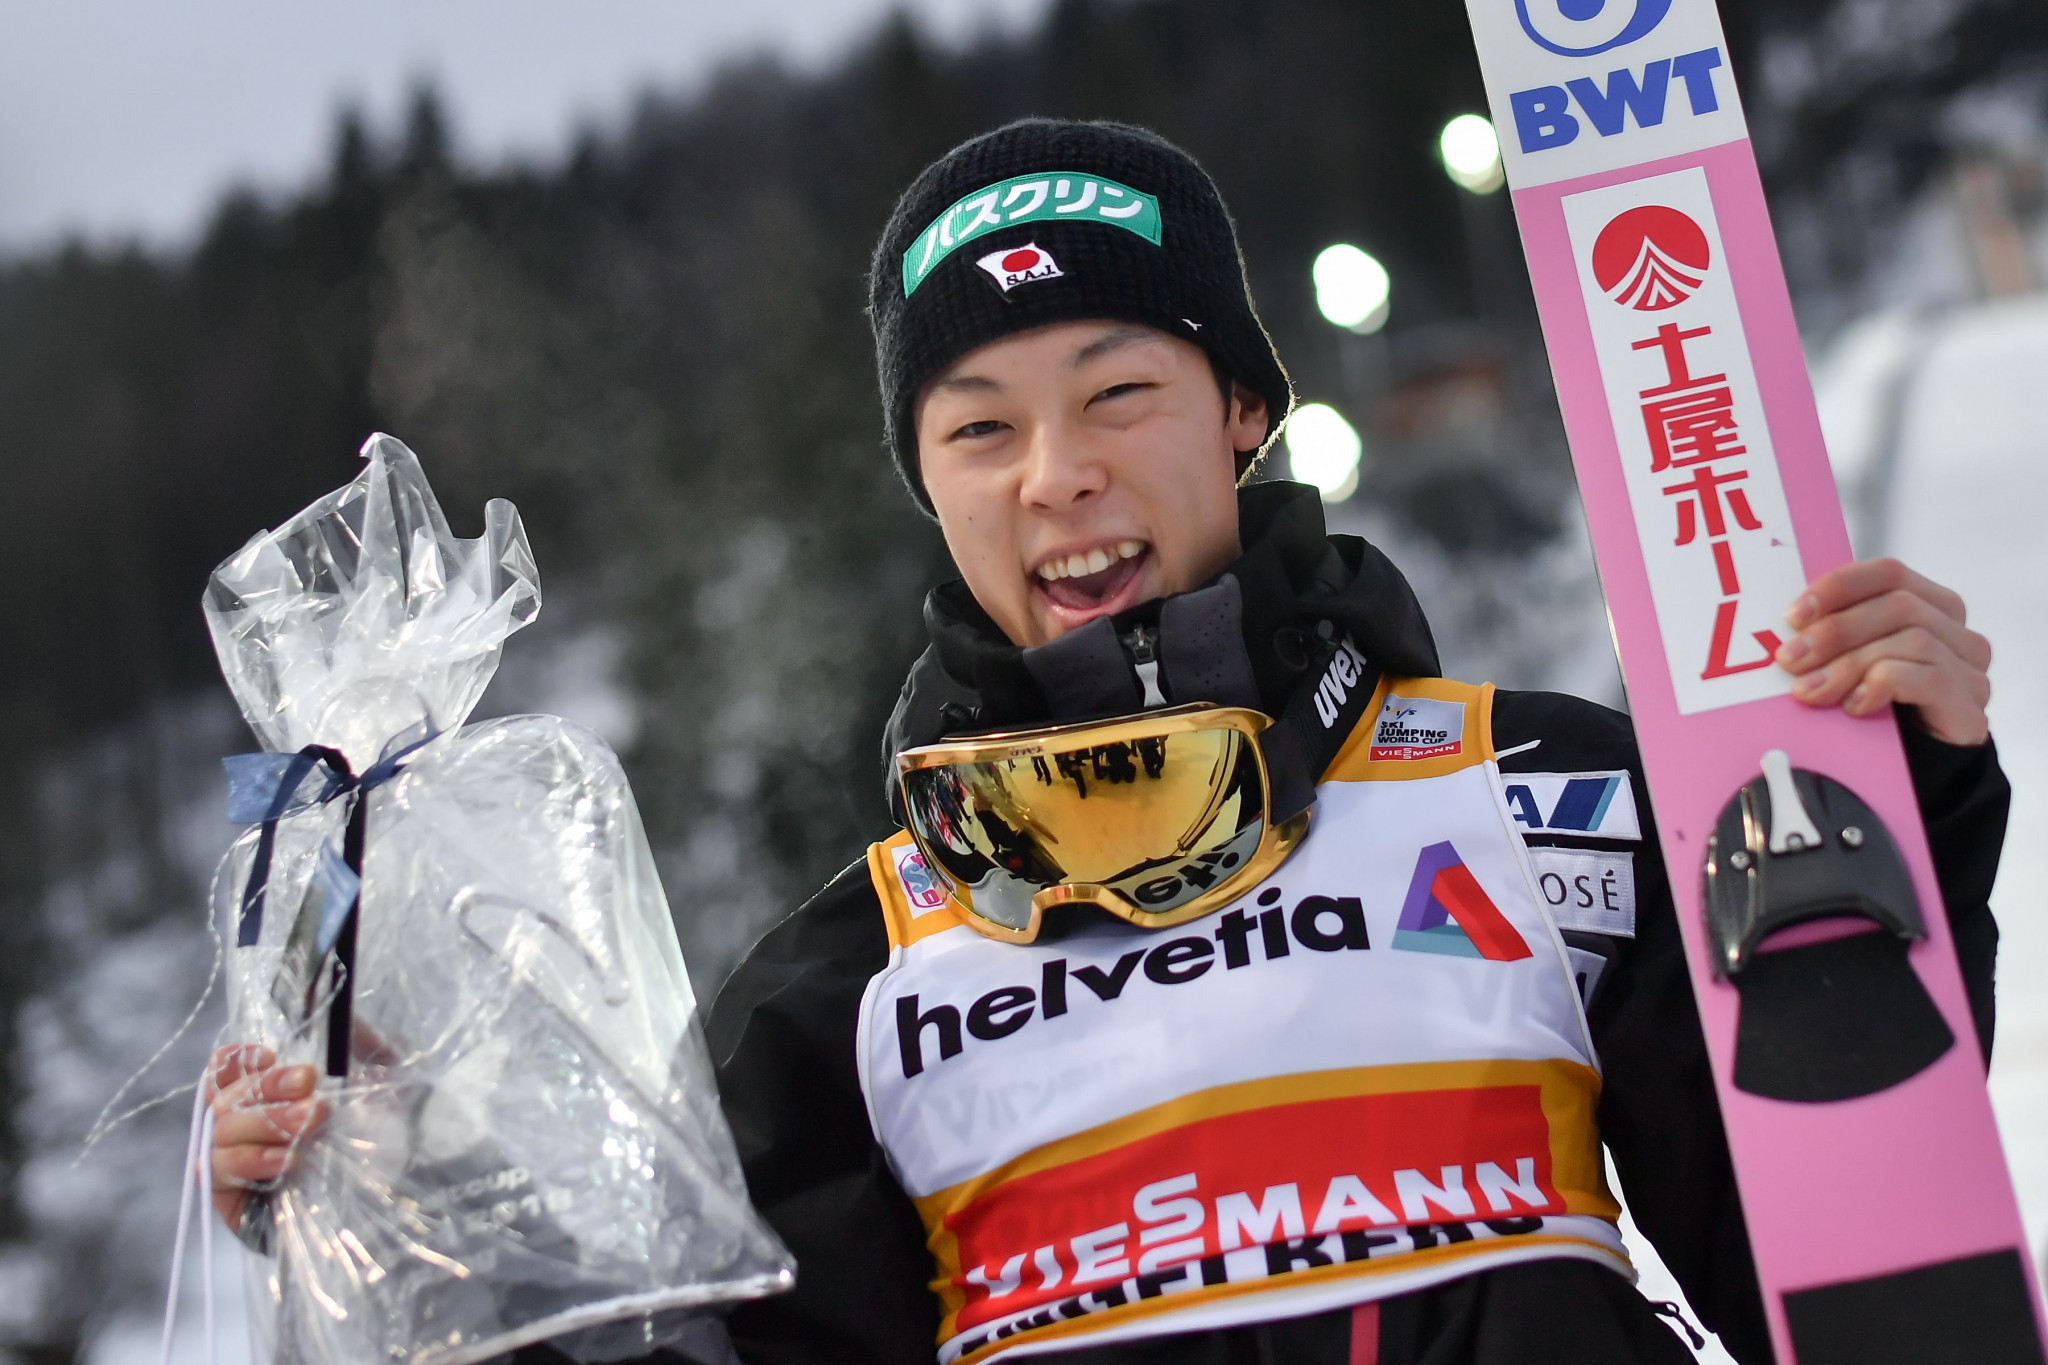 Ryoyu Kobayashi won the Ski-Jumping World Cup competition held today in Engelberg ©Getty Images